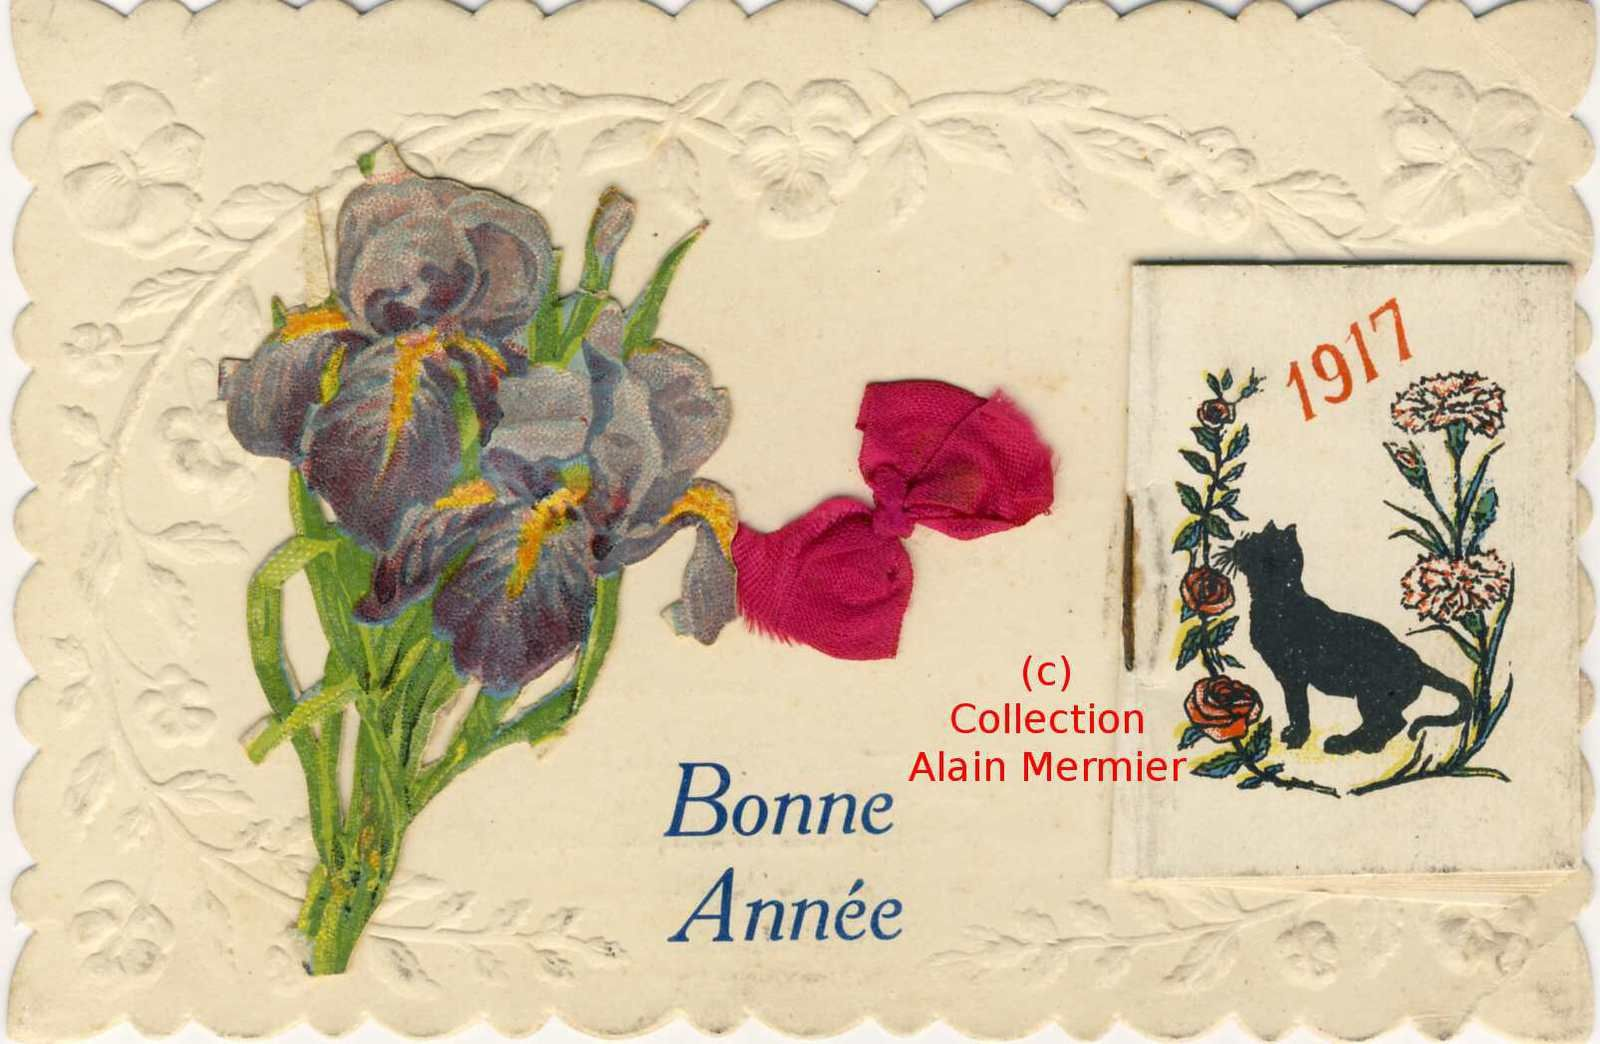 1986 -Assembly. Good year. Iris découpis and small calendar with black cat. France. 1917